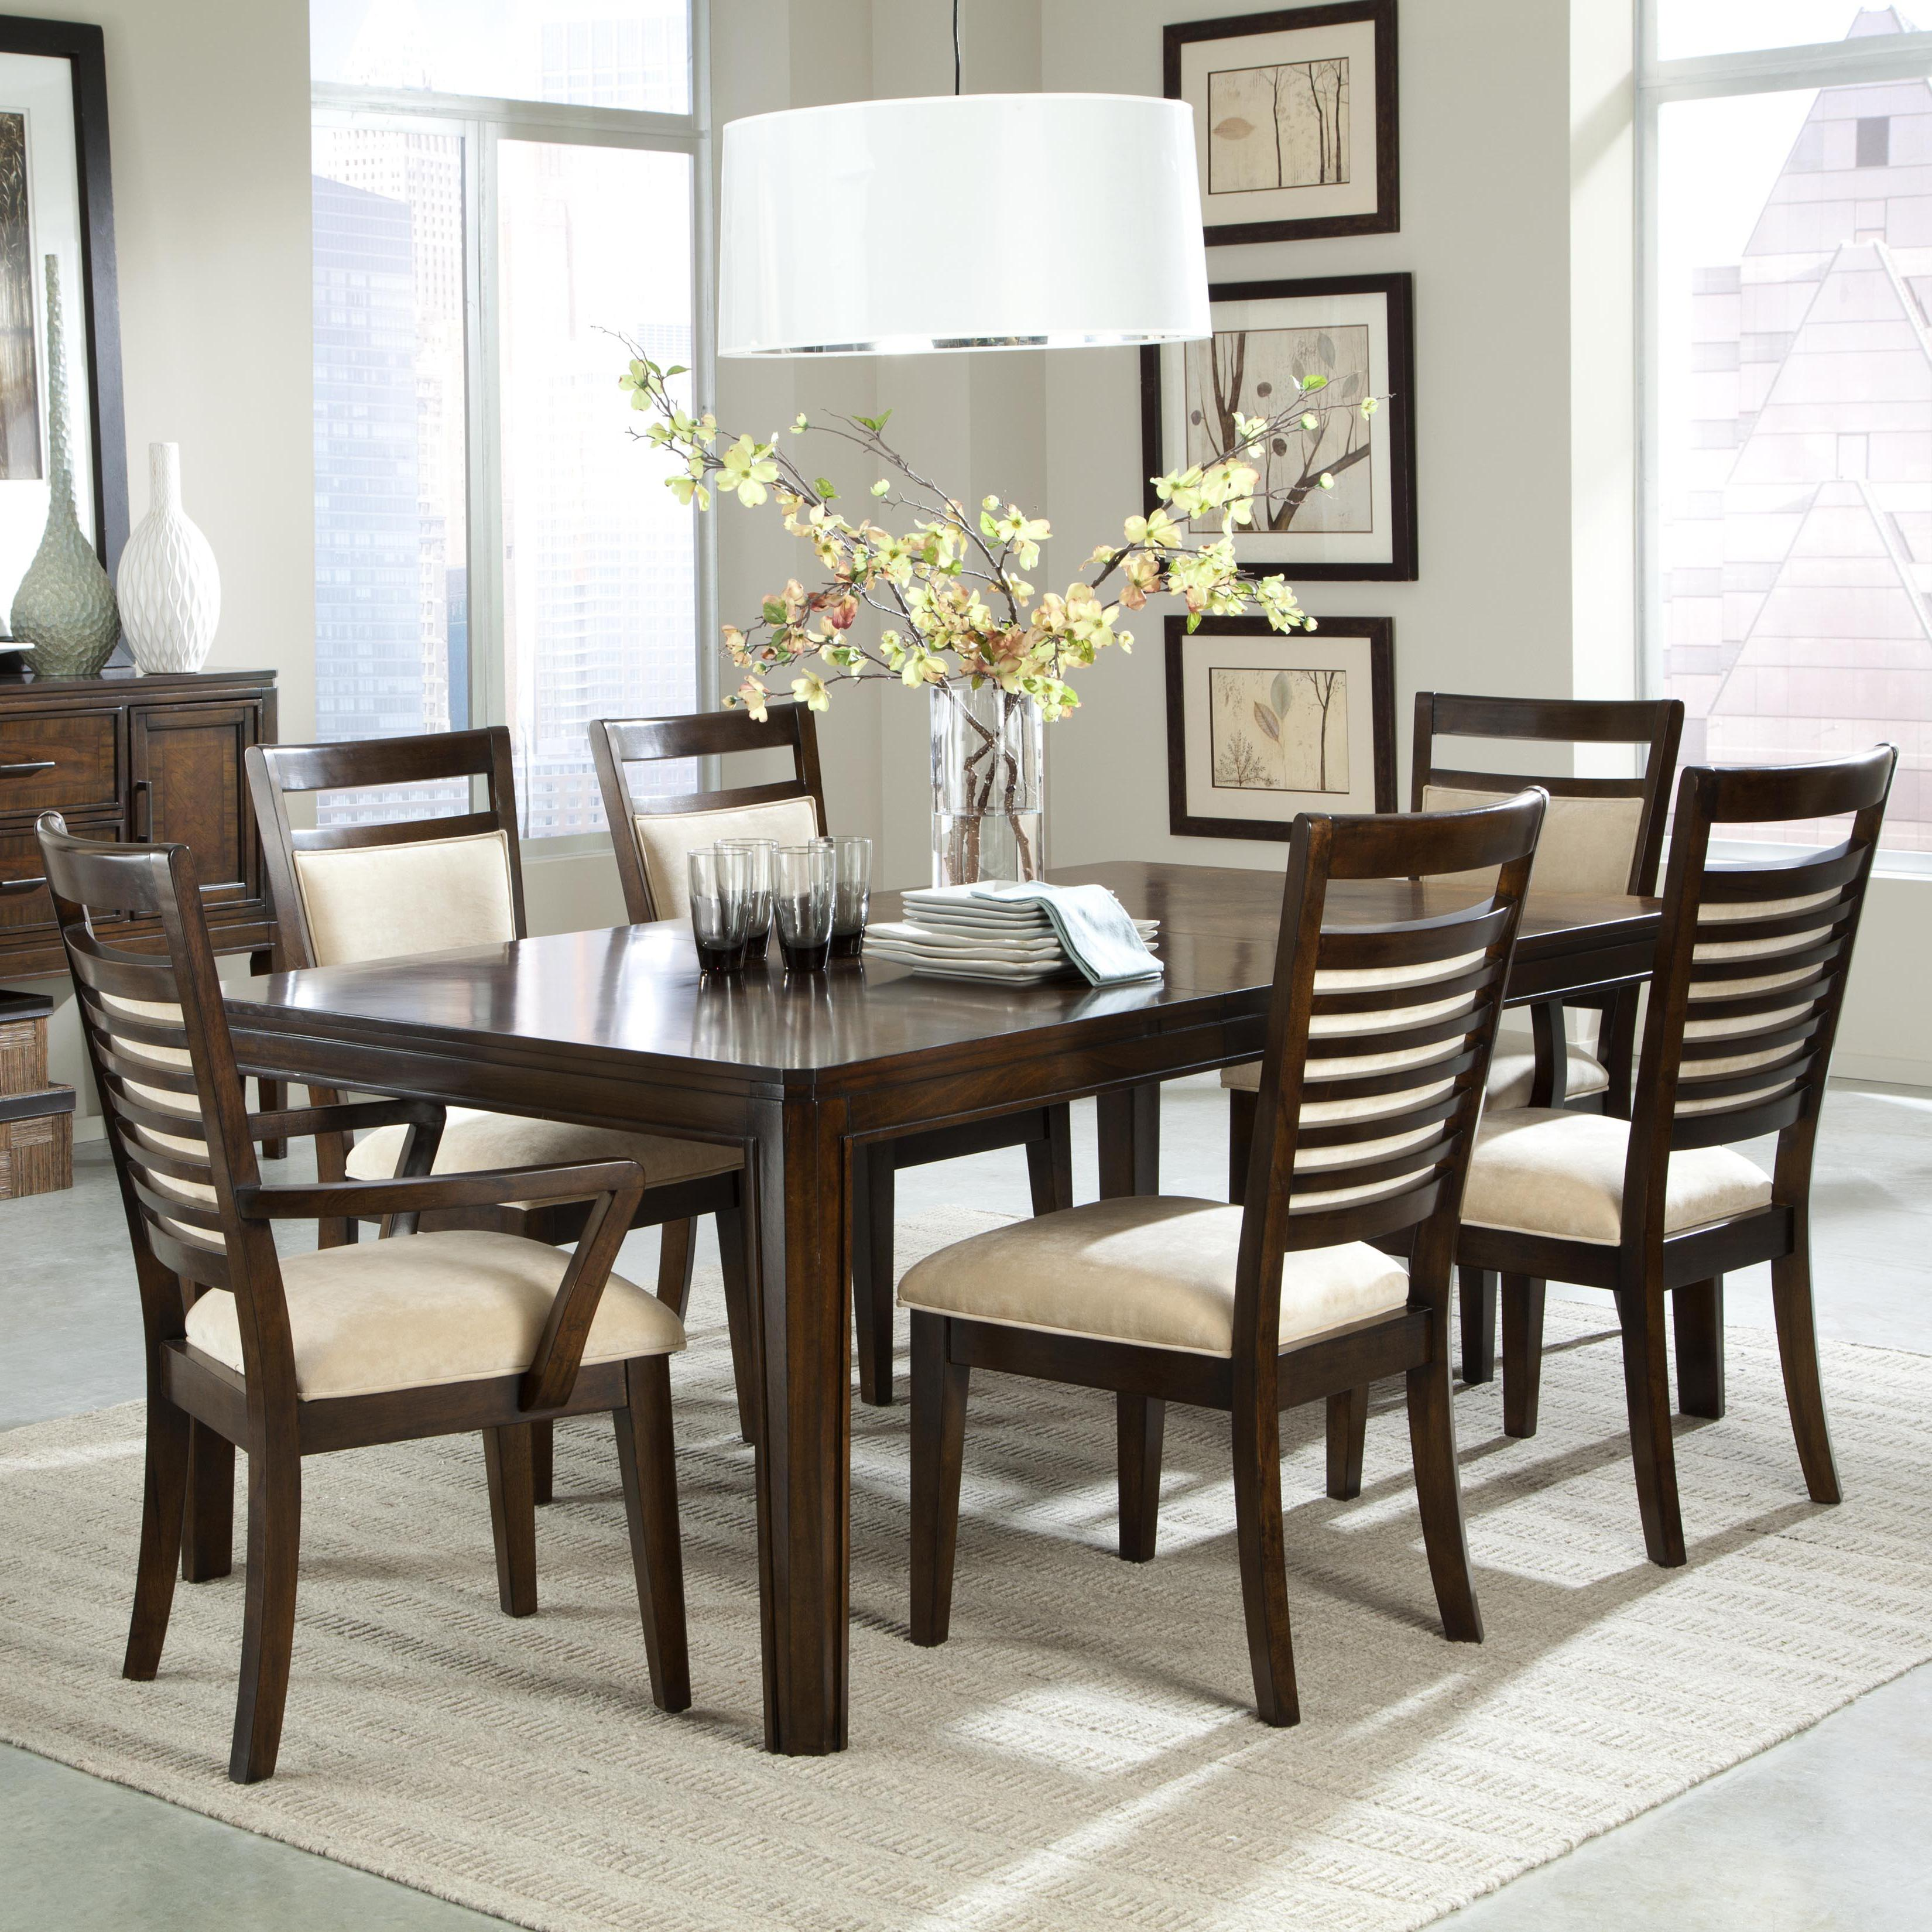 kitchen table chairs Standard Furniture Avion 7 Piece Dining Table Set Item Number